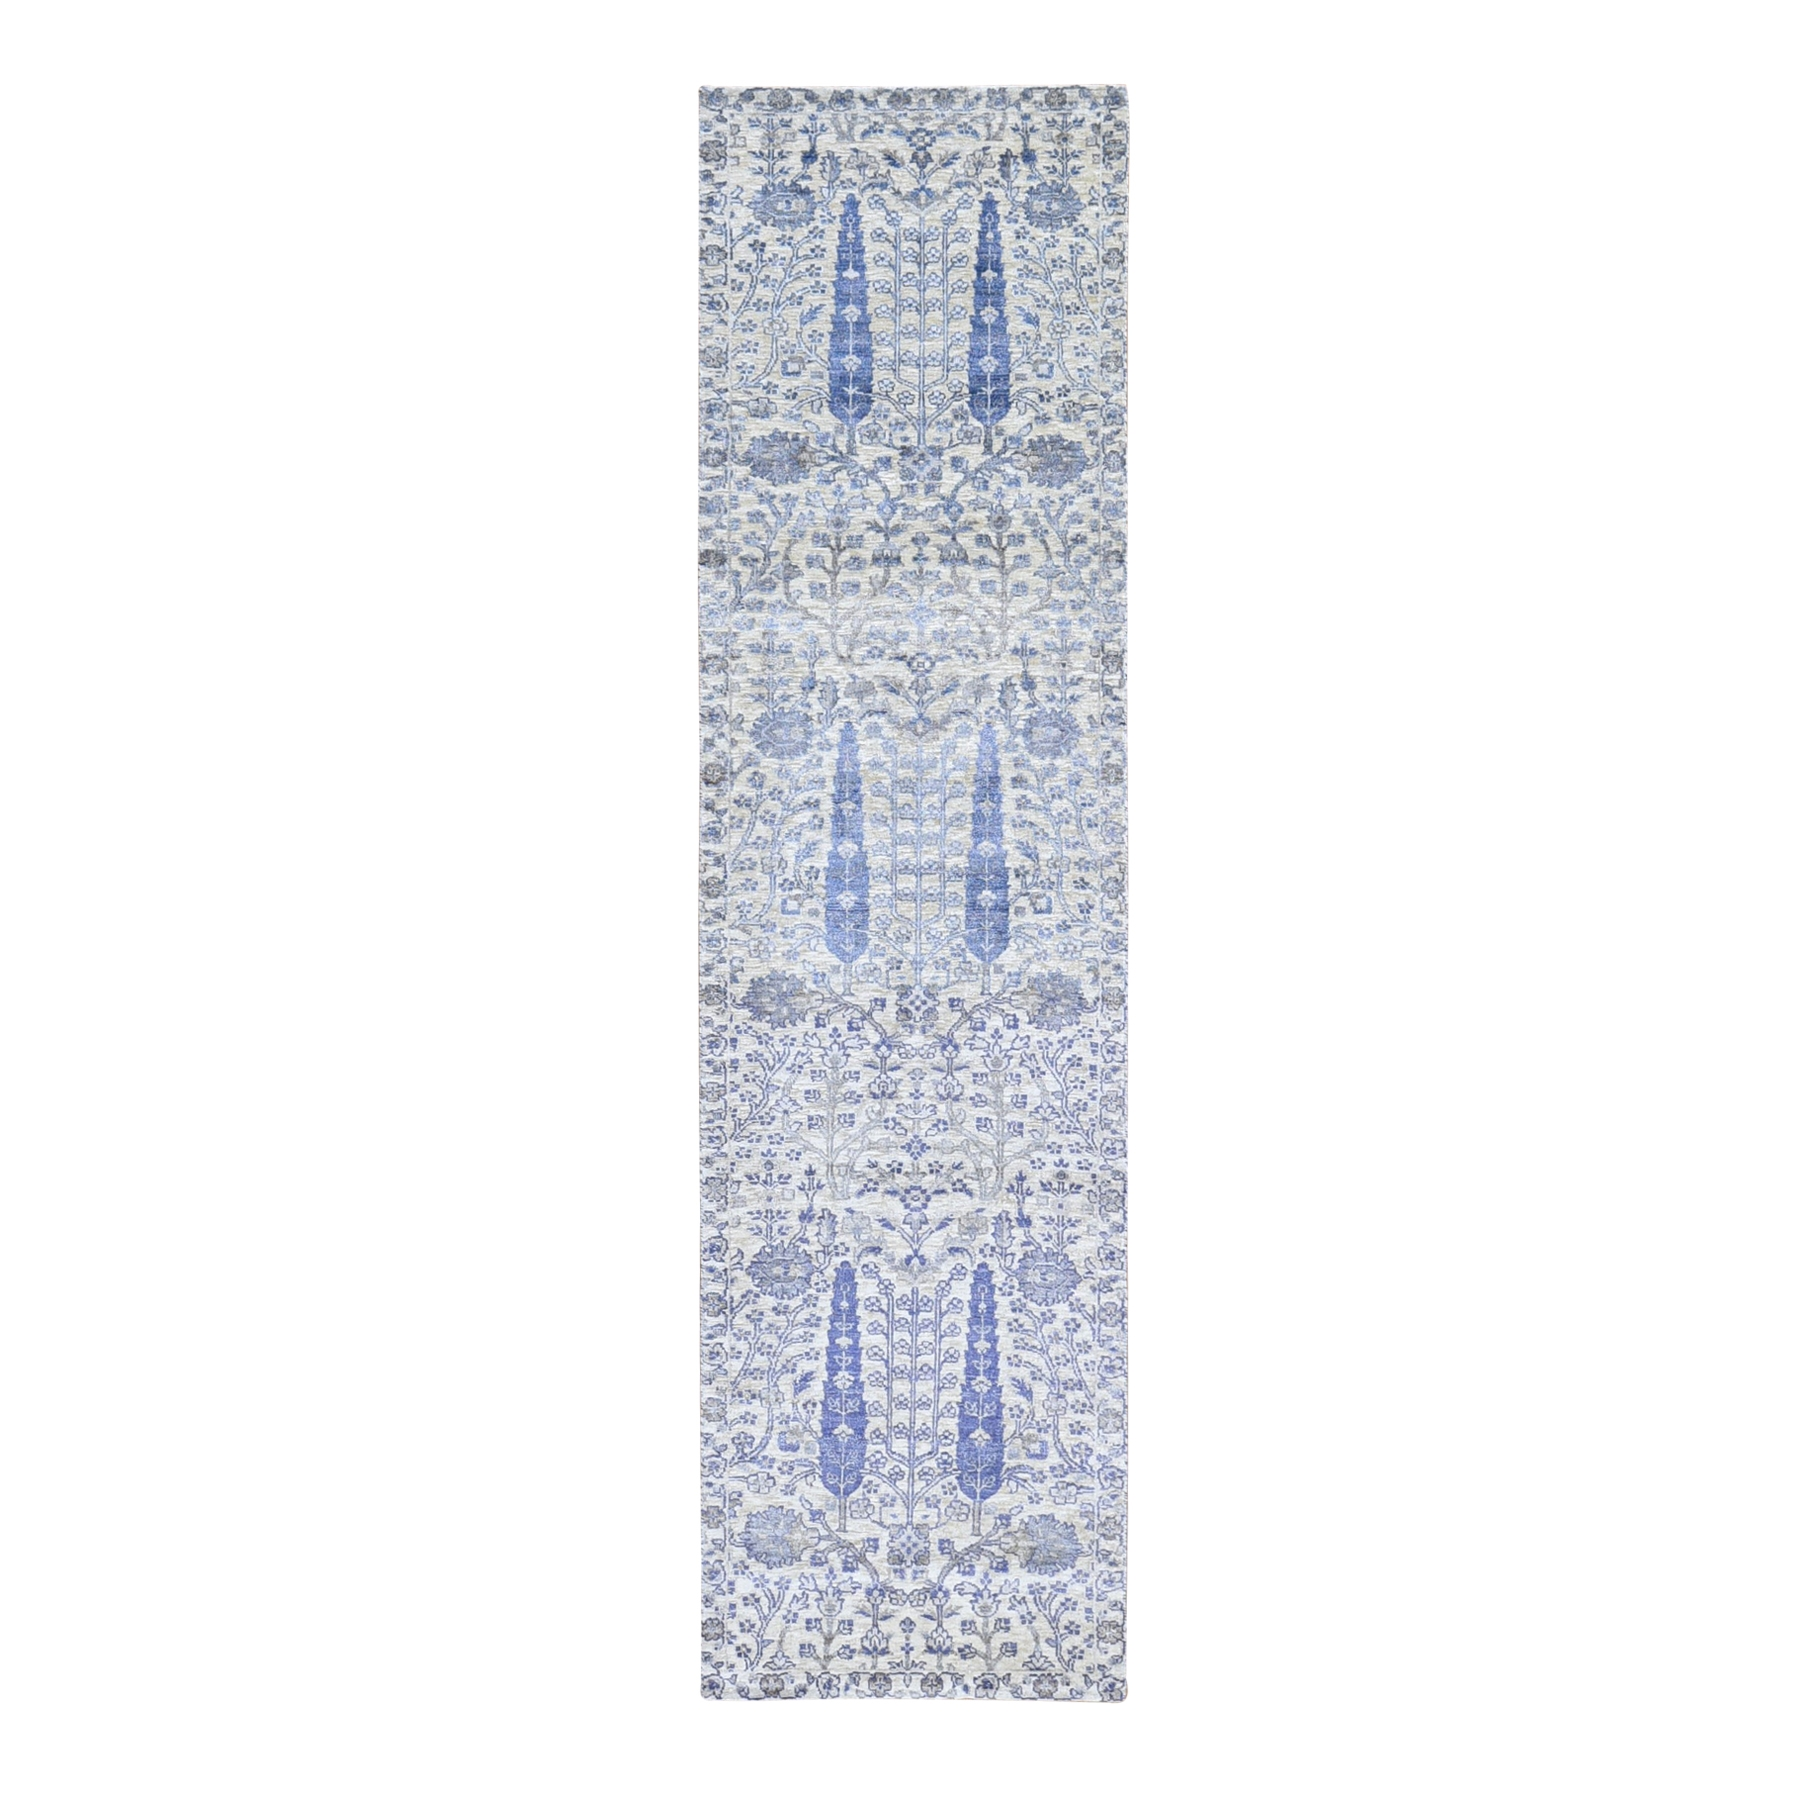 "2'7""x10'1"" Ivory Willow and Cypress Tree Design Silk with Textured Wool Hand Woven Runner Oriental Rug"